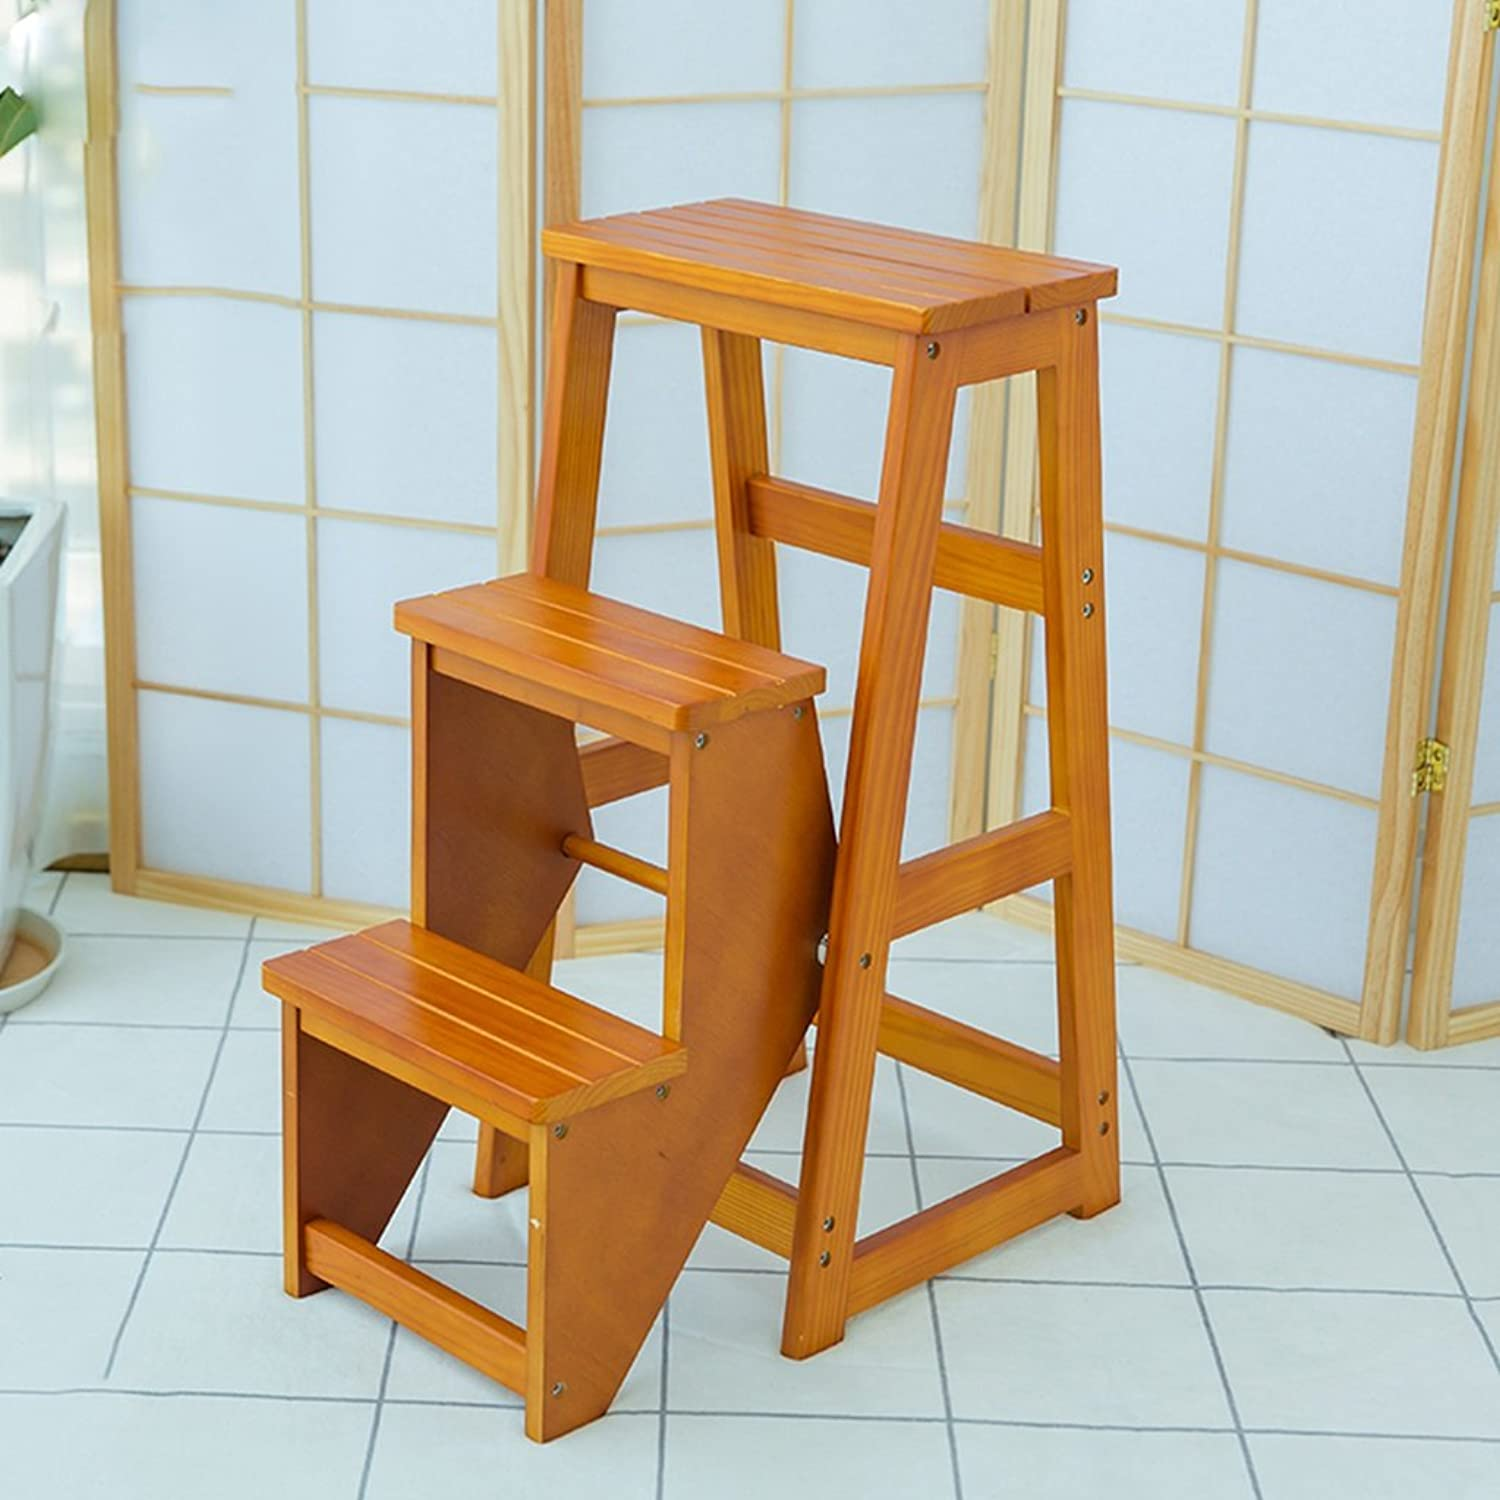 Ladder Stools Wooden Folding 3tier Household Multifunctional Step